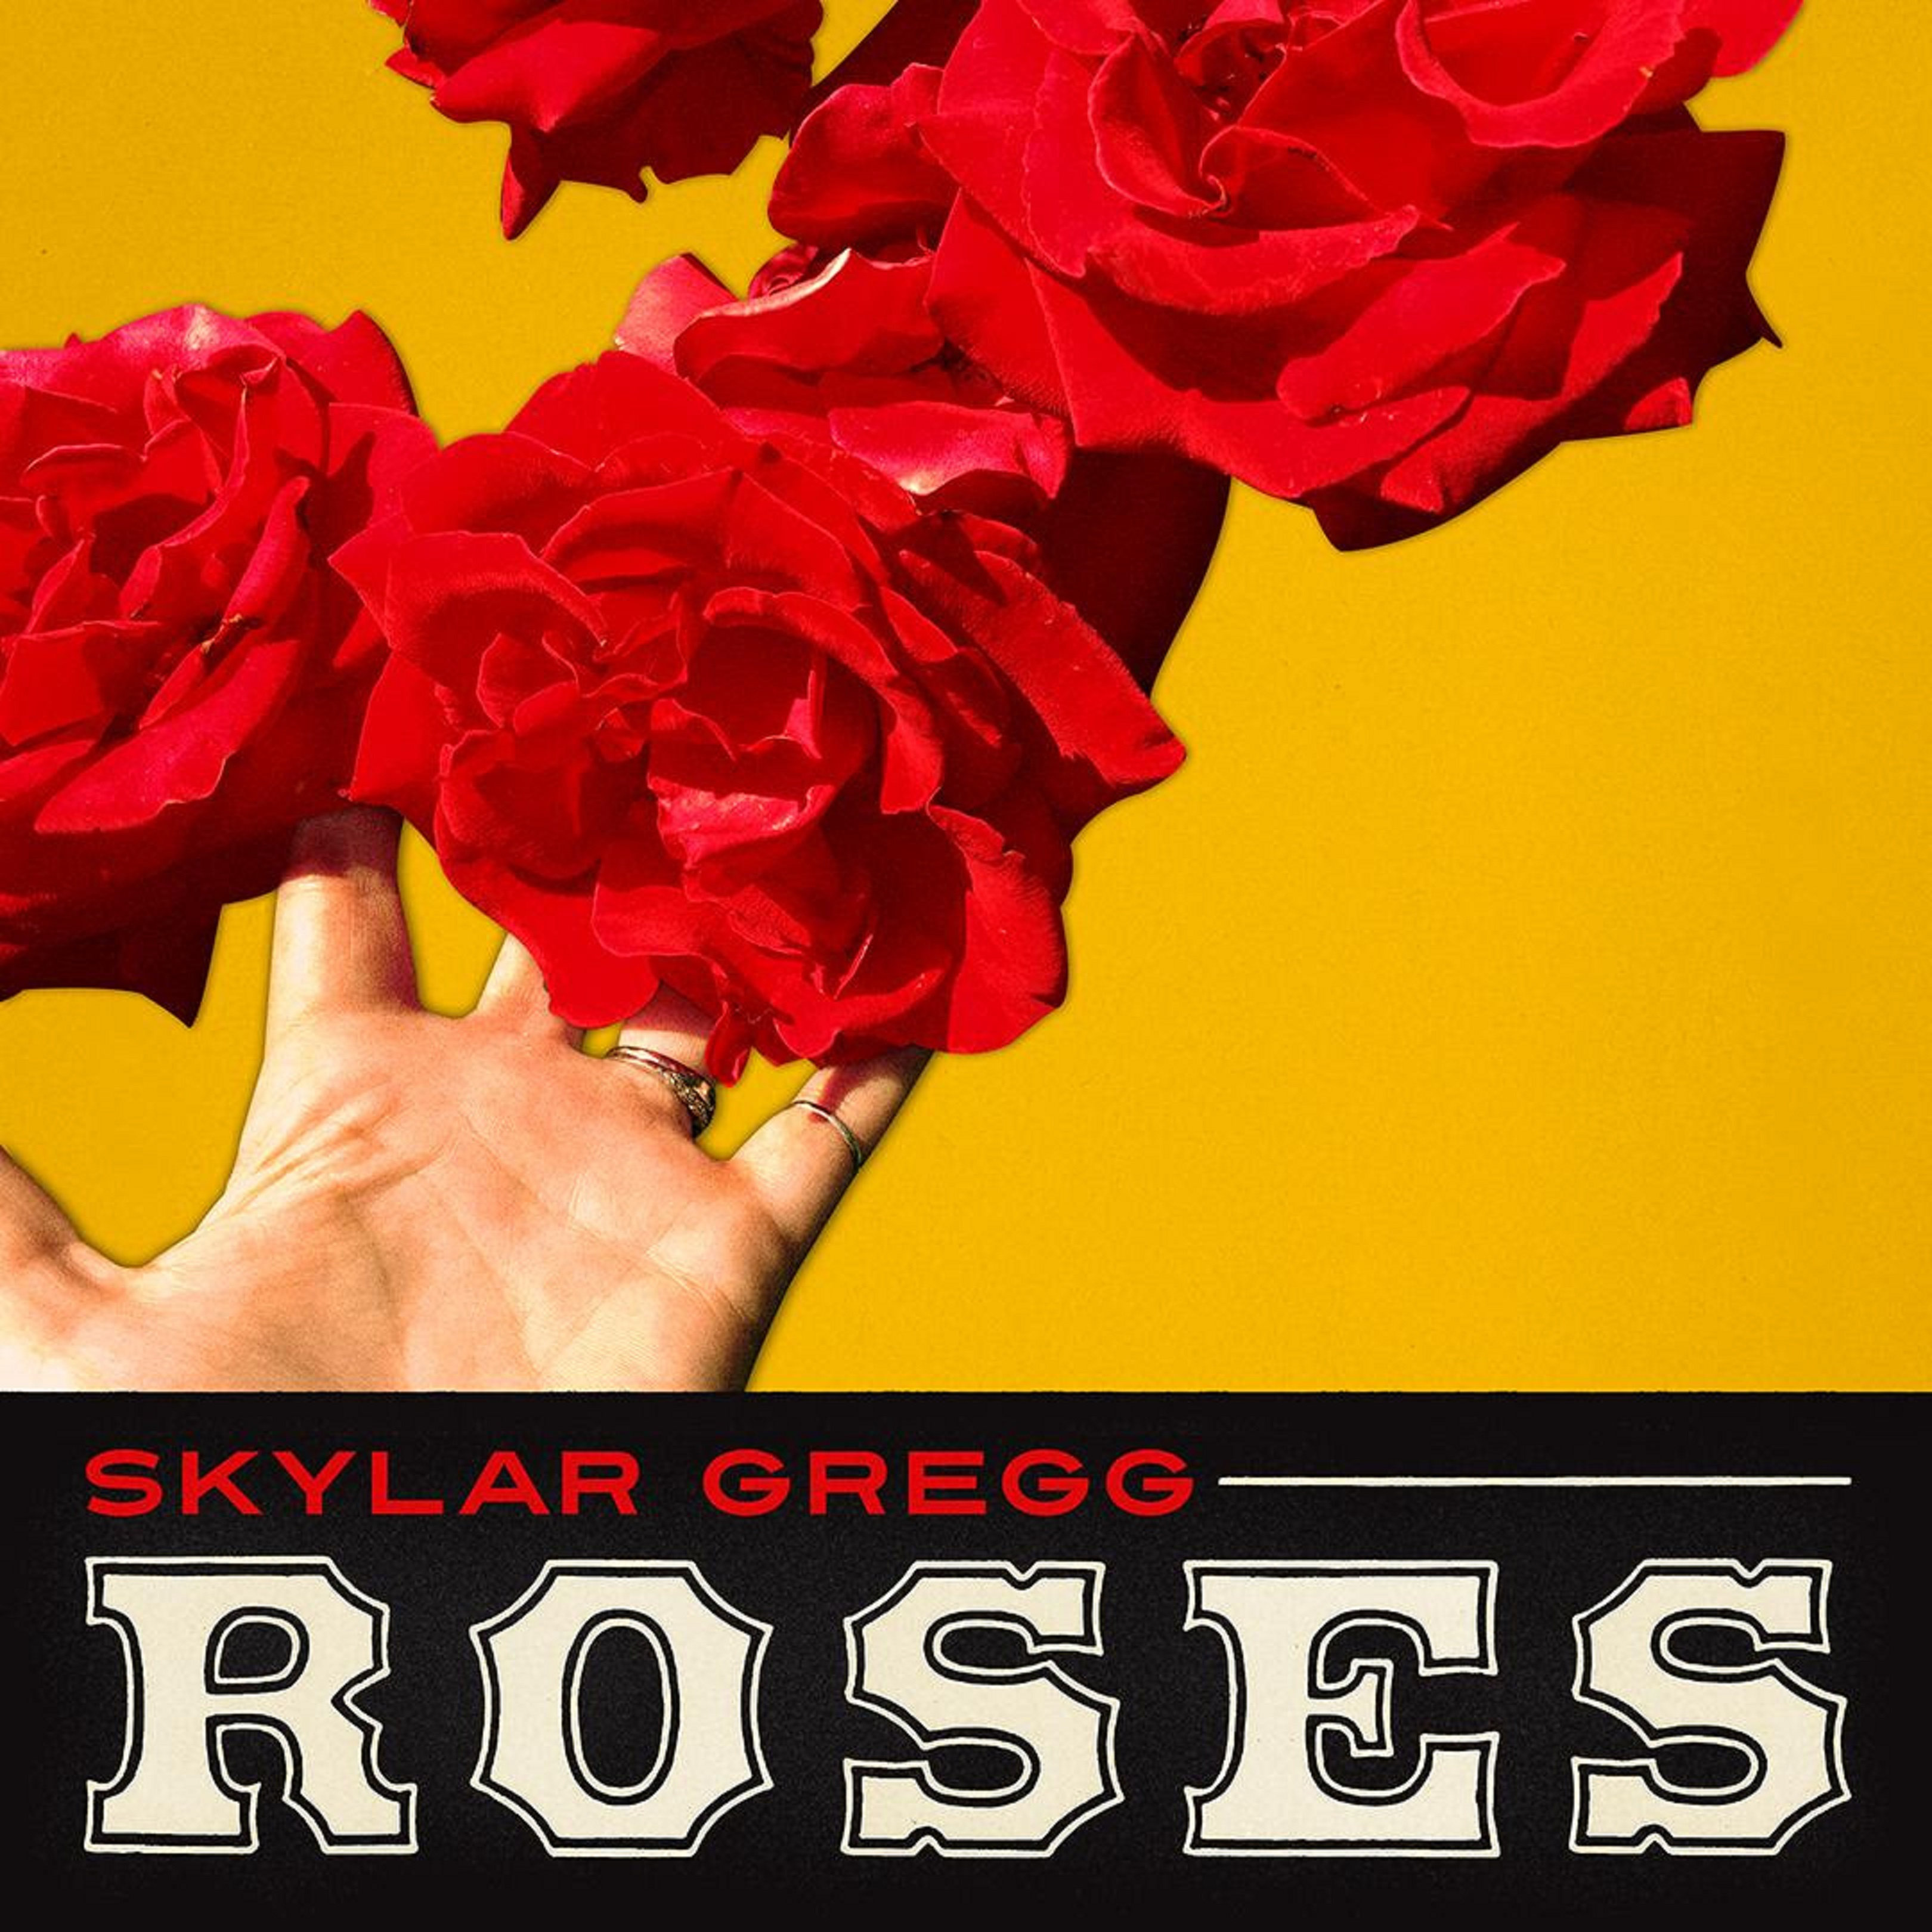 Soul-Meets-Country Songwriter Skylar Gregg's New Album Roses Out Today